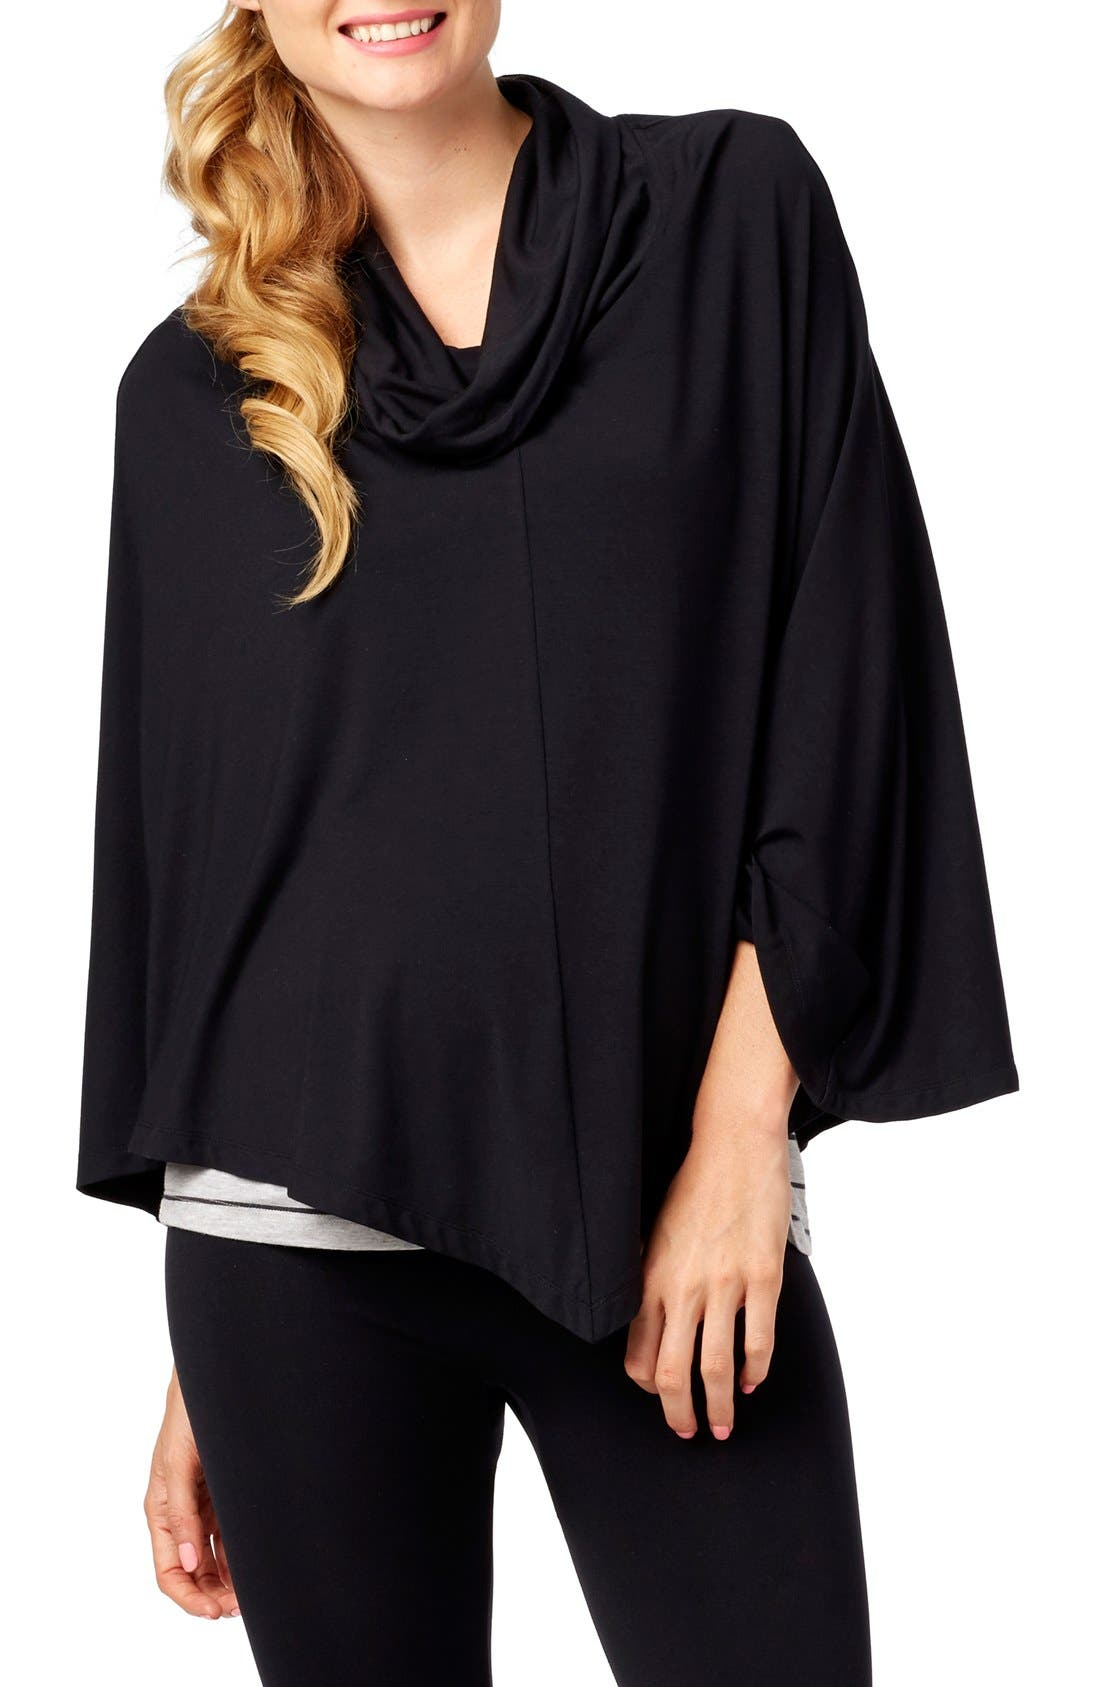 Rosie Pope Nursing Cover-Up